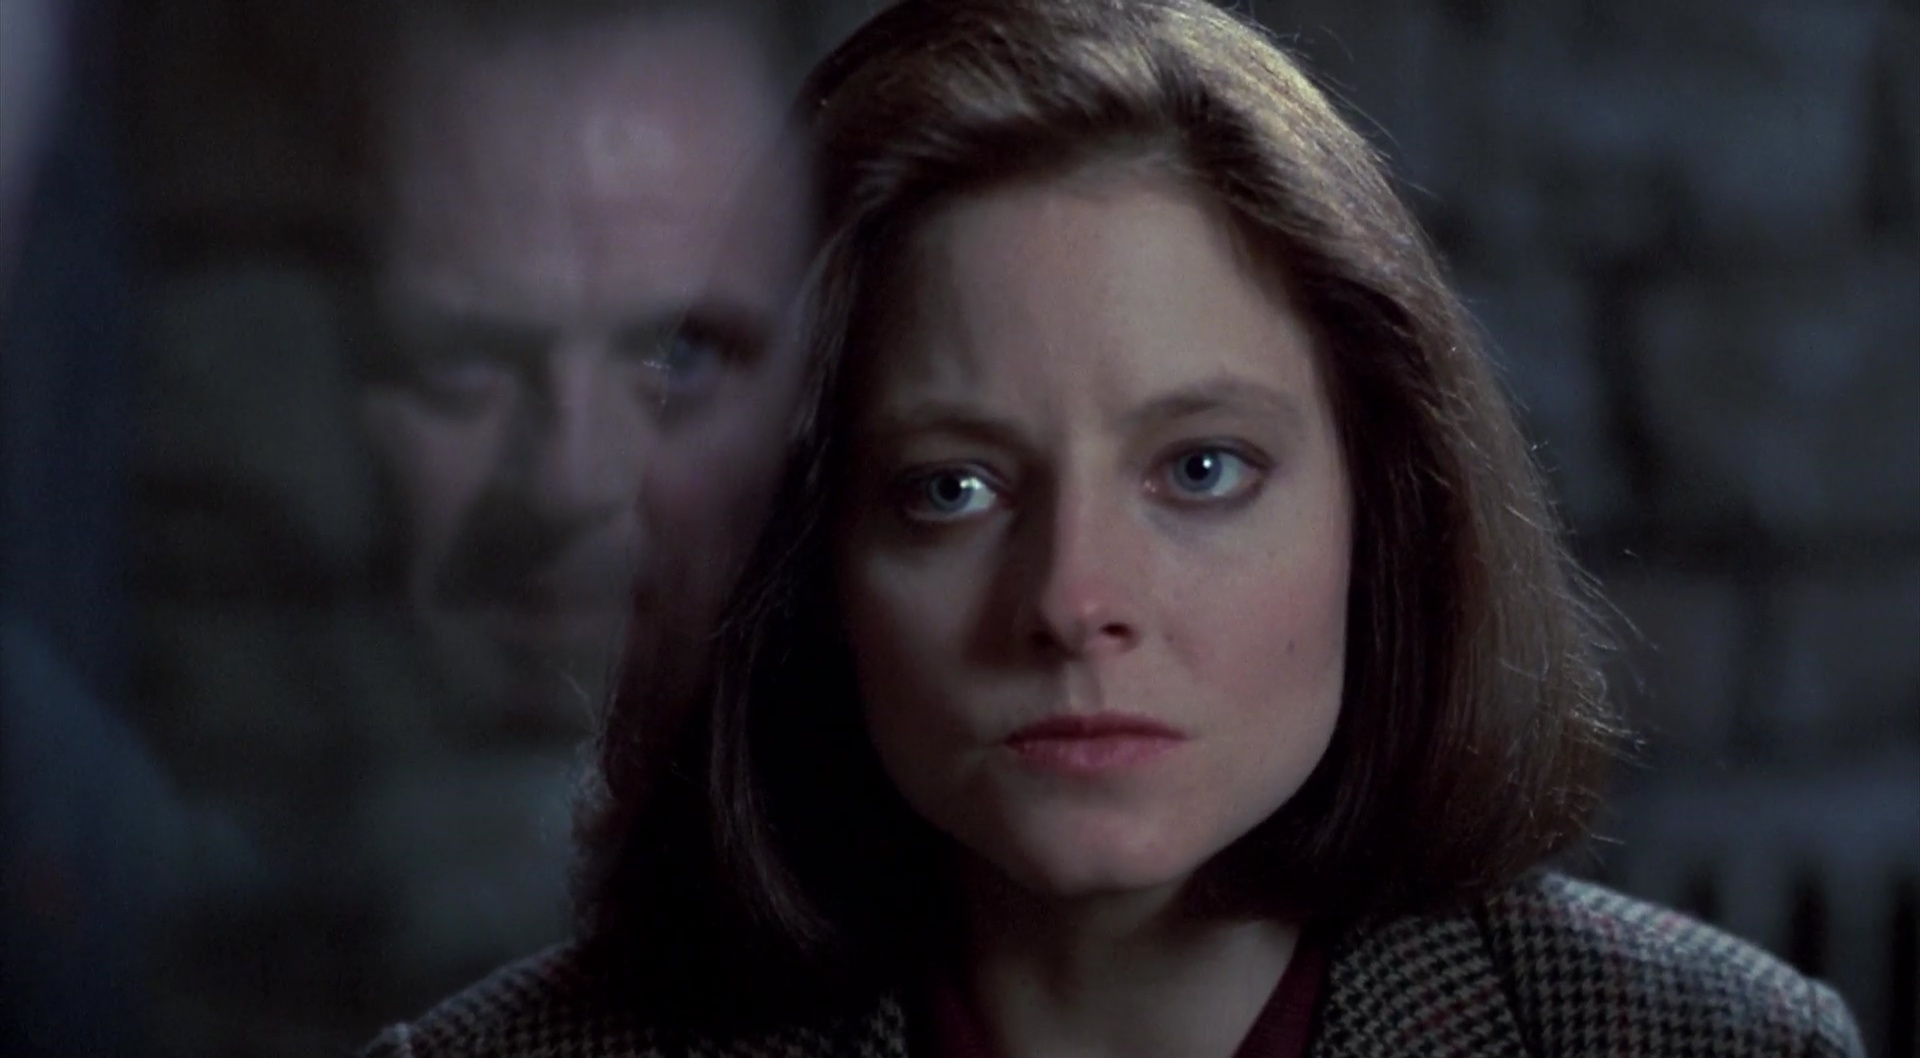 li: Anthony Hopkins als Dr. Hannibal Lecter, re: Jodie Foster als Clarice Starling in The Silence of the Lambs (OT) – dt: Das Schweigen der Lämmer (1991) © Orion Pictures/20th Century Fox  Home Entertainment